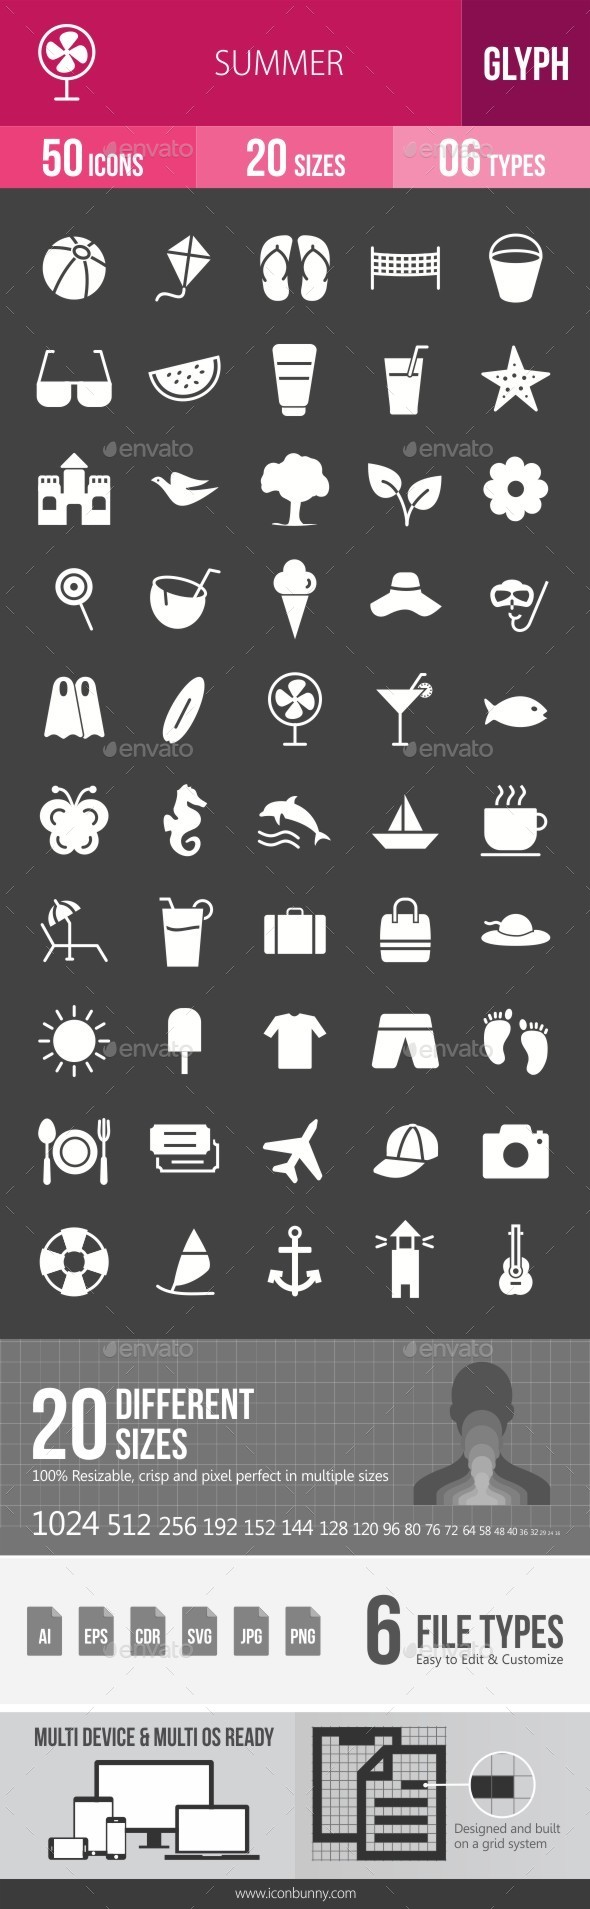 Summer Glyph Inverted Icons - Icons